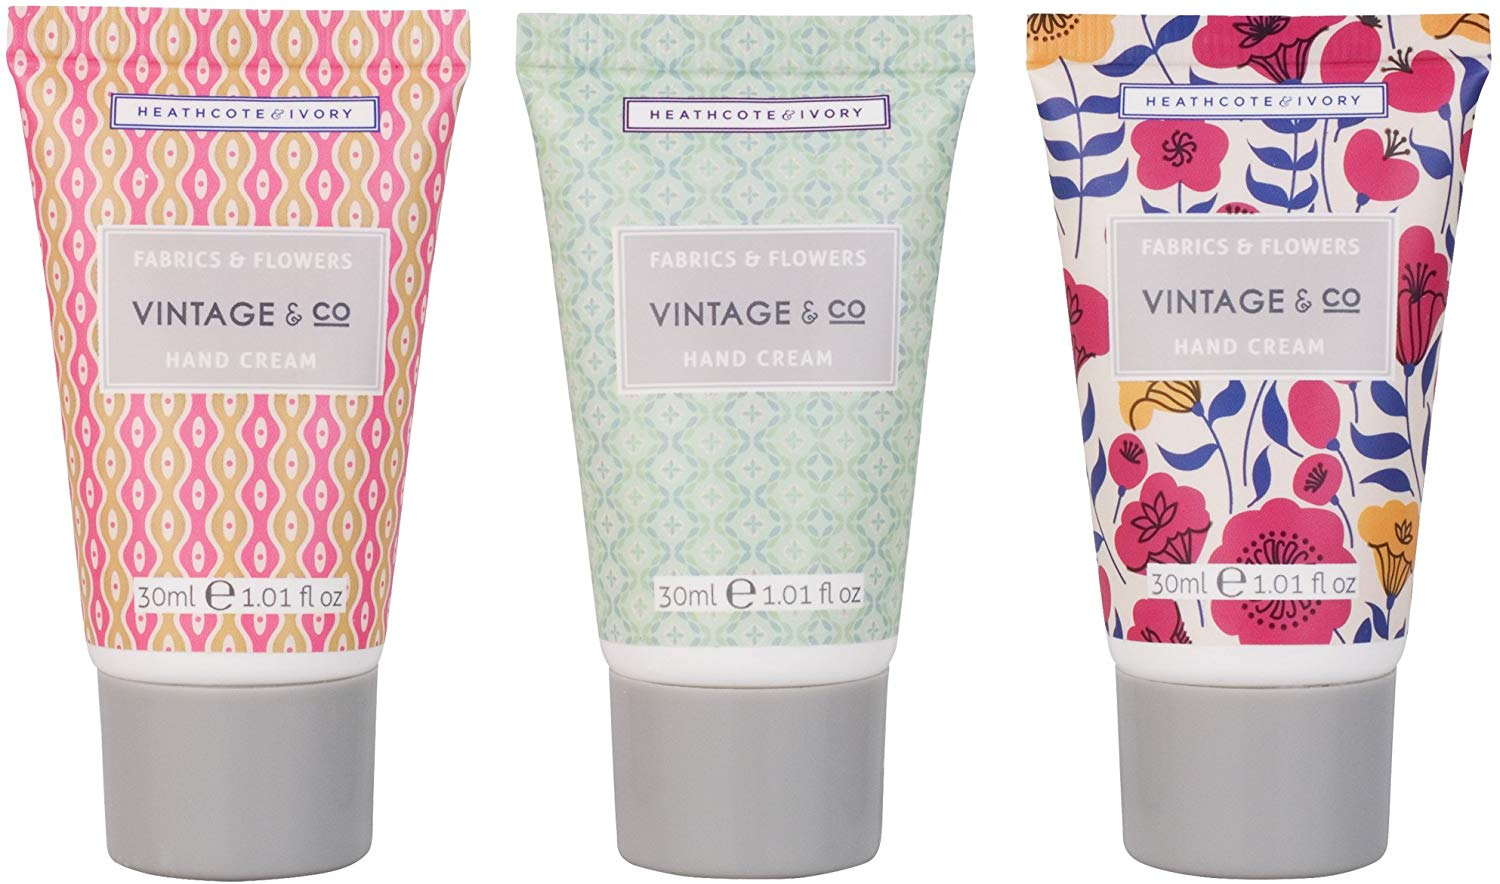 Vintage Fabric & Flowers Hand Cream Trio